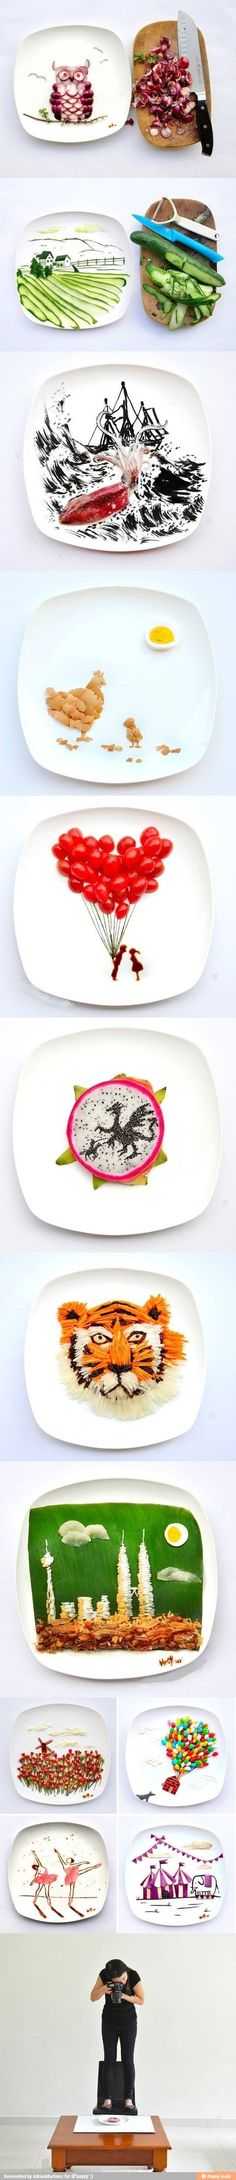 And they say not to play with your food... Psssh